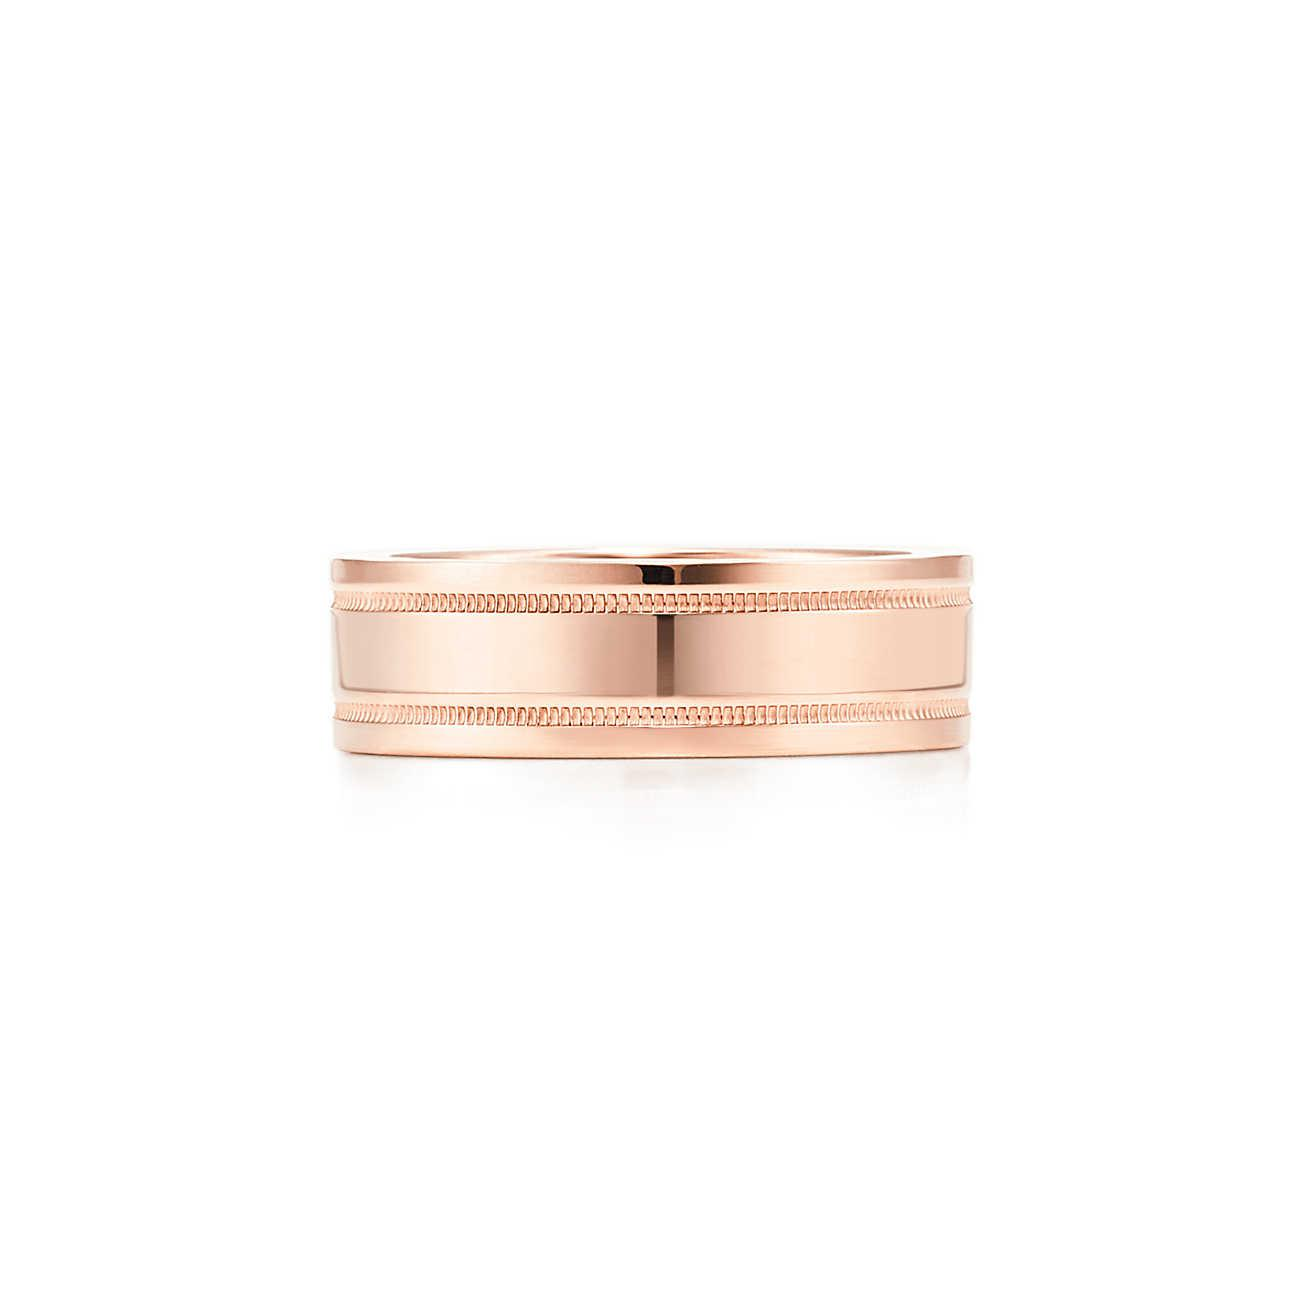 Tiffany Classic wedding band ring in 18k rose gold, 6 mm wide - Size 10 1/2 Tiffany & Co.